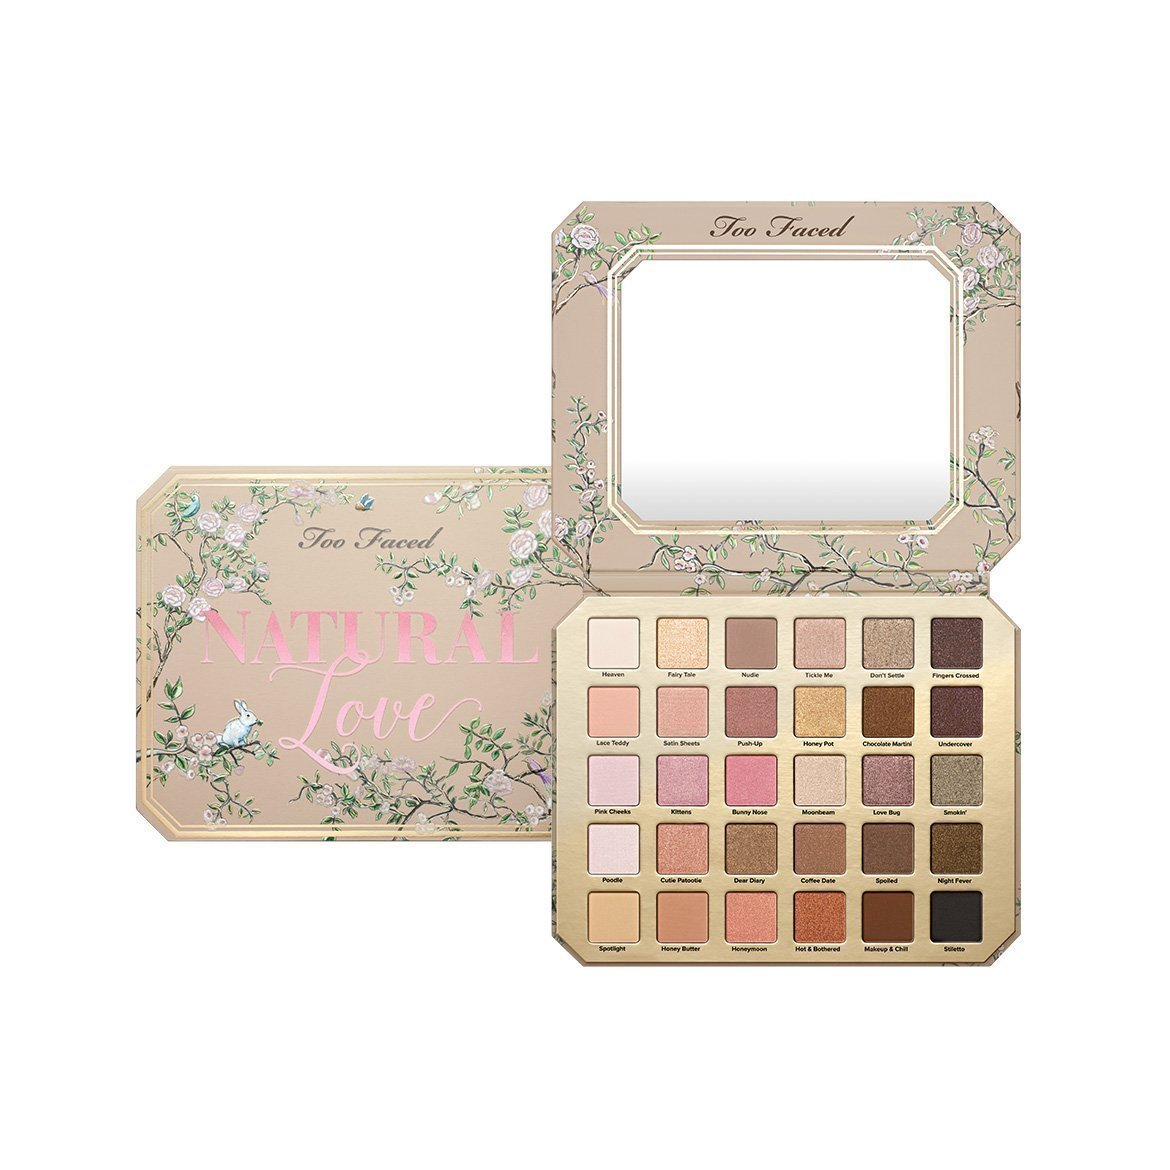 Natural Love Ultimate Neutral Eye Shadow Collection Too Faced